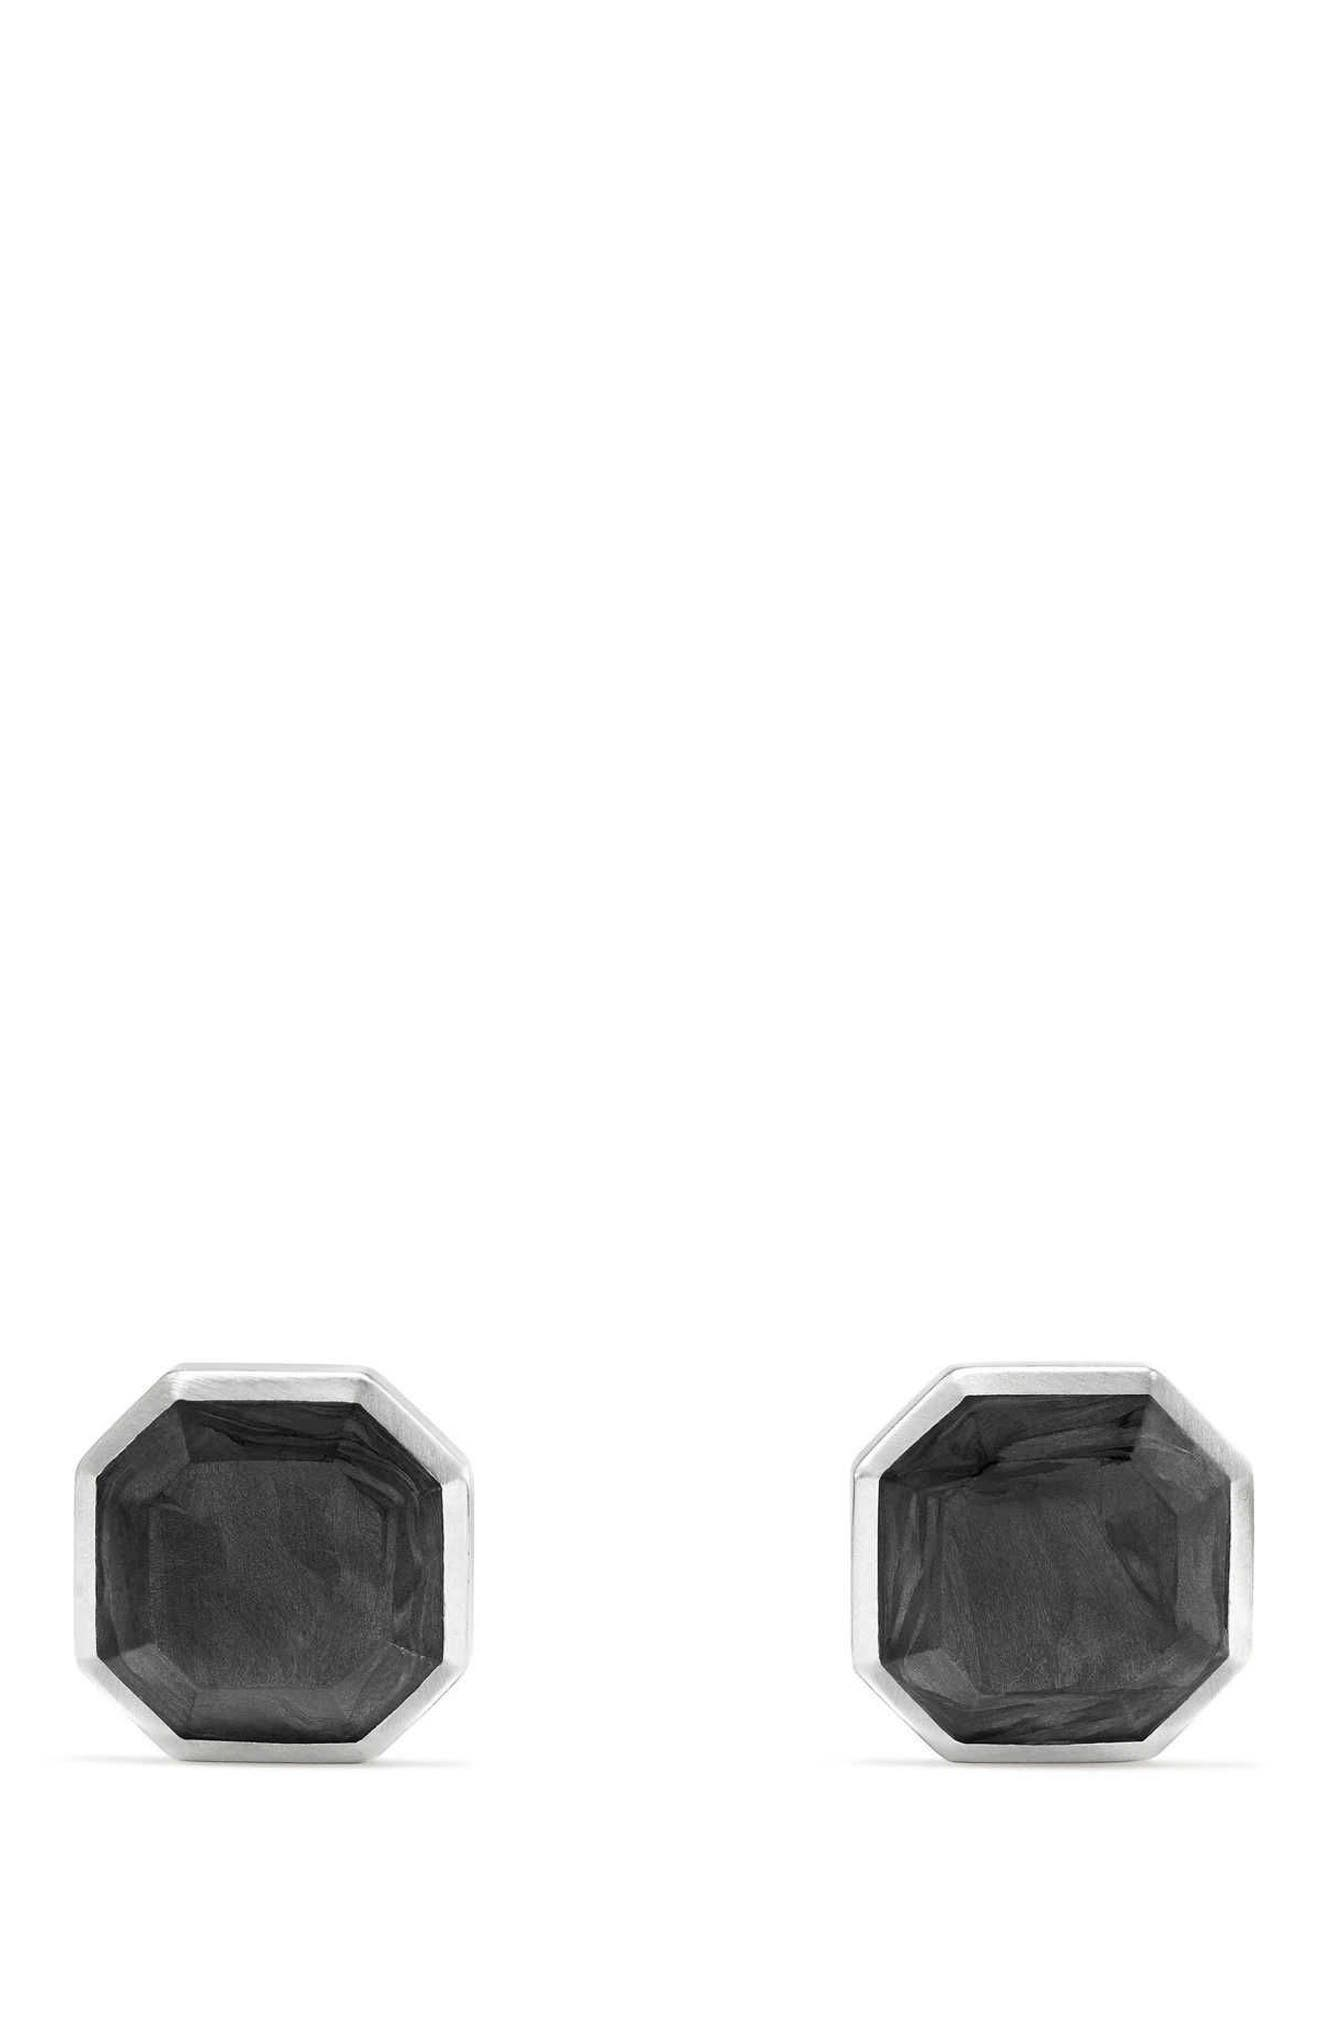 Forged Carbon Cuff Links,                         Main,                         color, 029